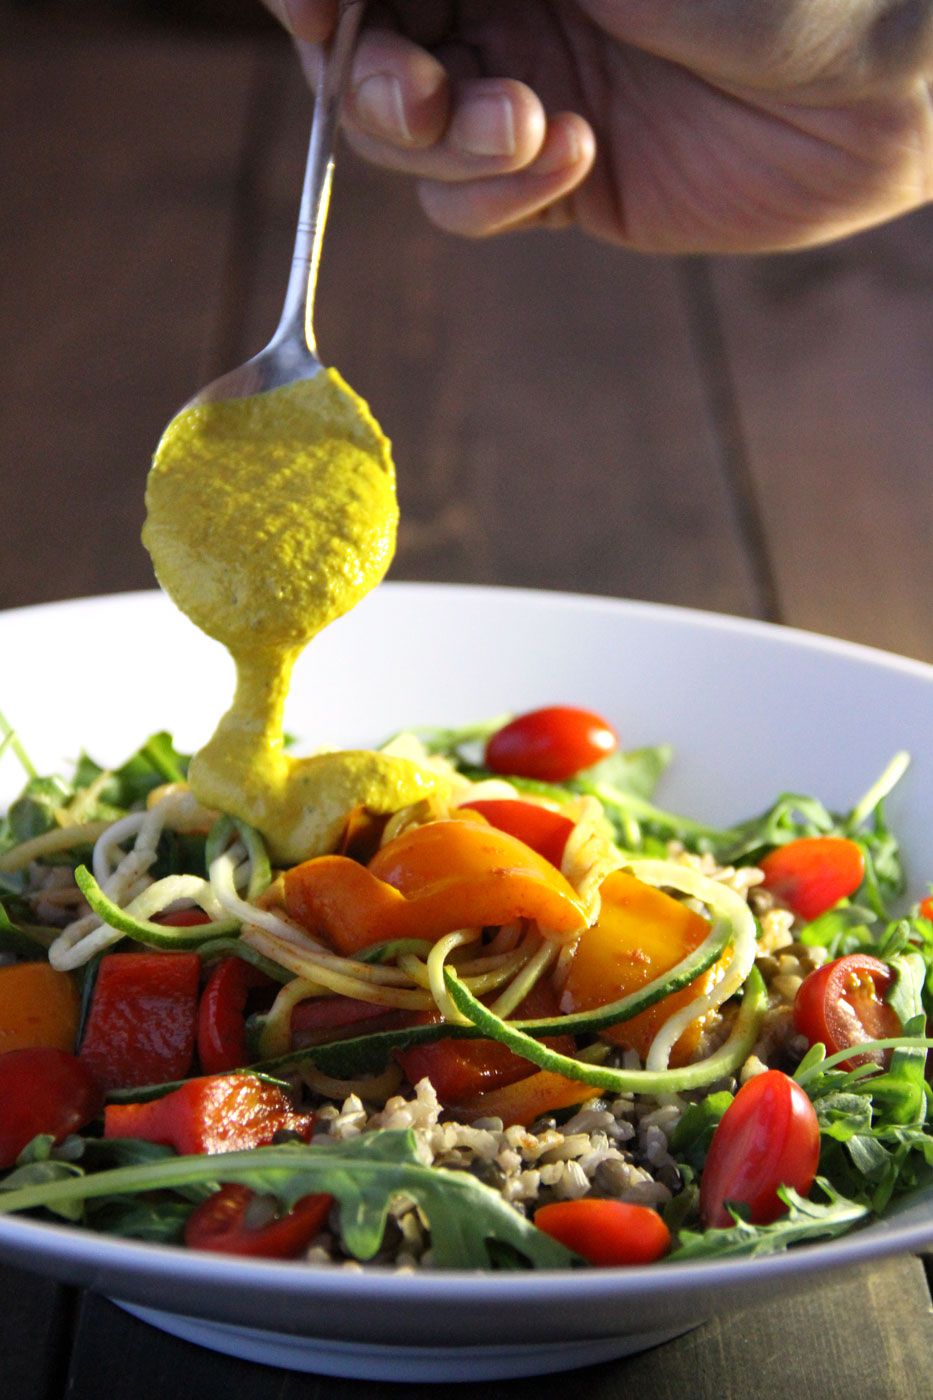 Spanish Style Nourish Bowl with An Amazing Vegan Cheese Sauce by active vegetarian portrait